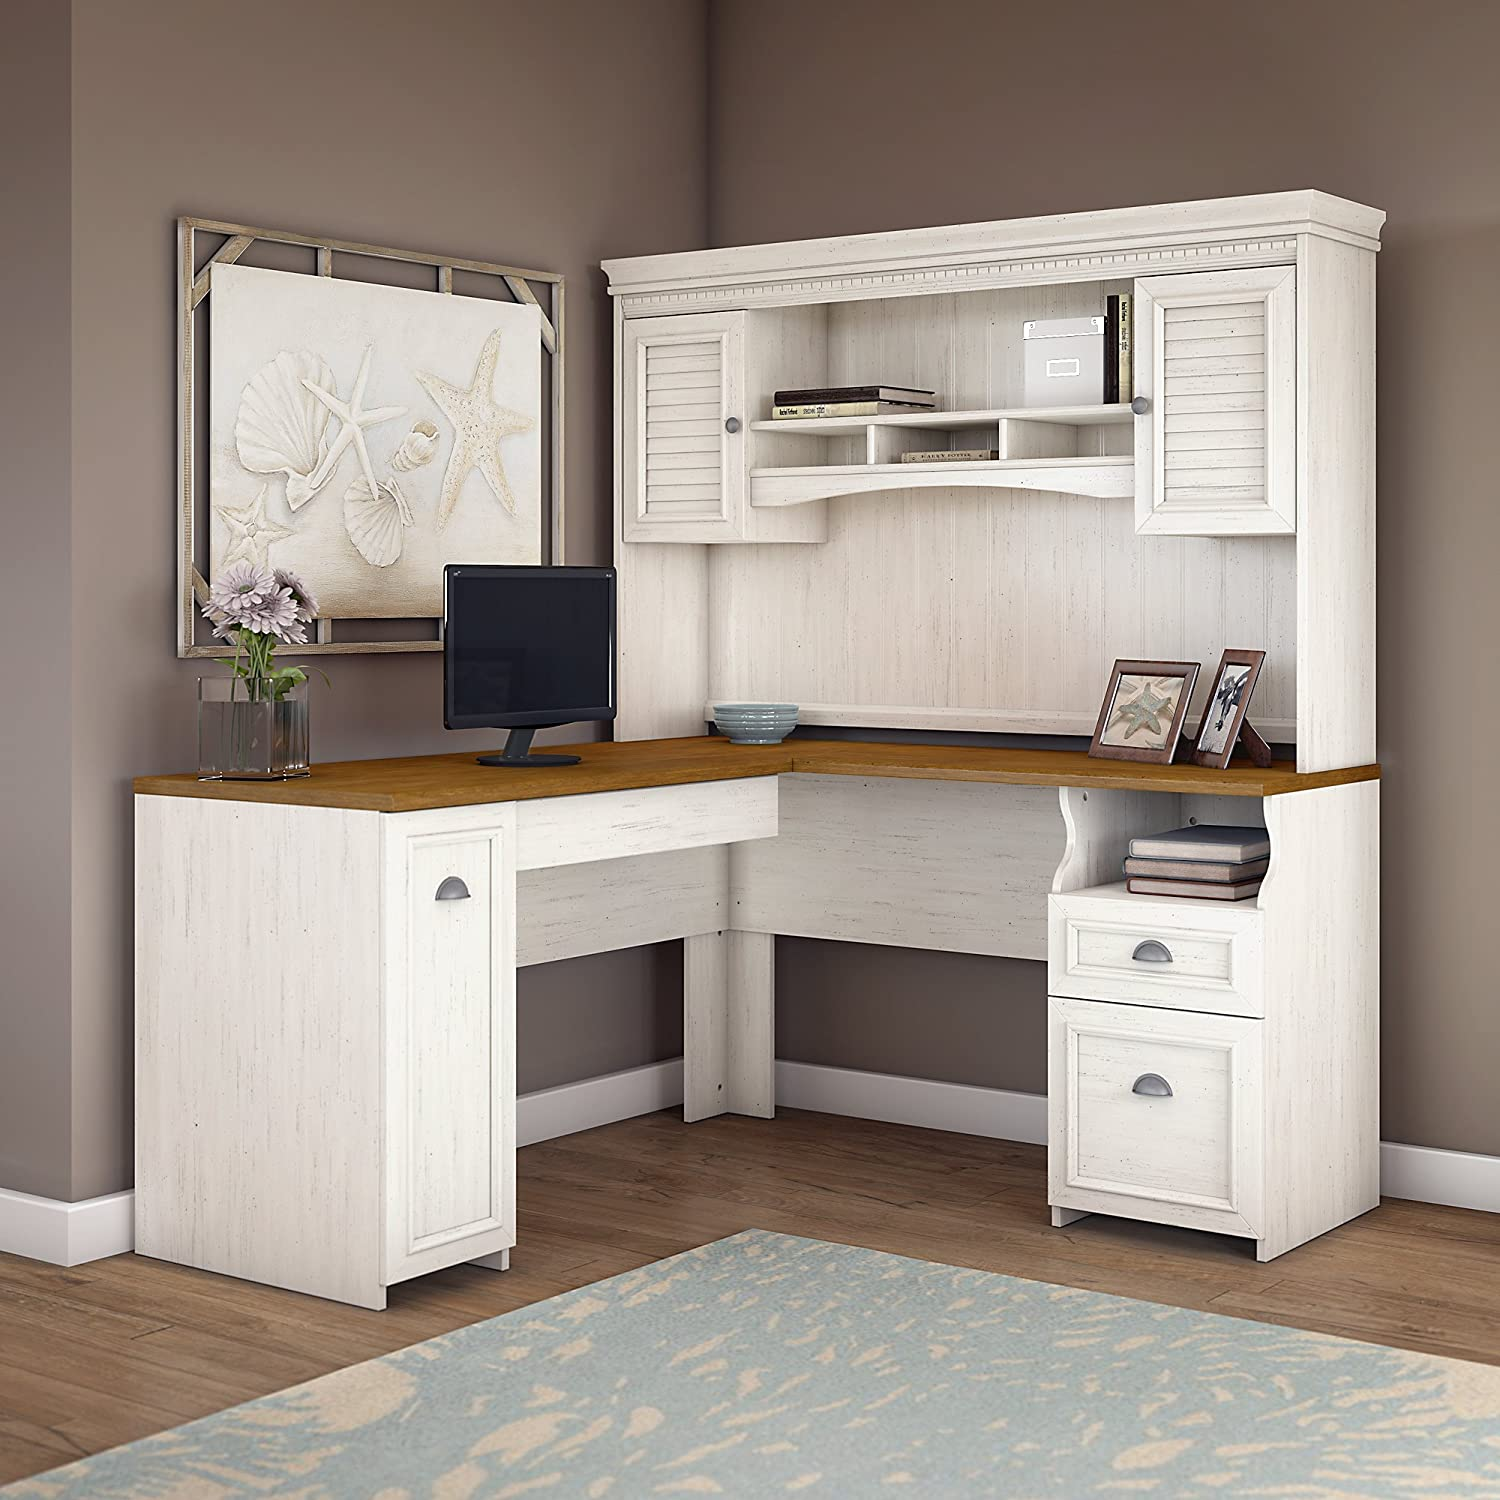 Home Design Ideas For Small Spaces: 15 Small Office Design Ideas You Can Replicate At Home